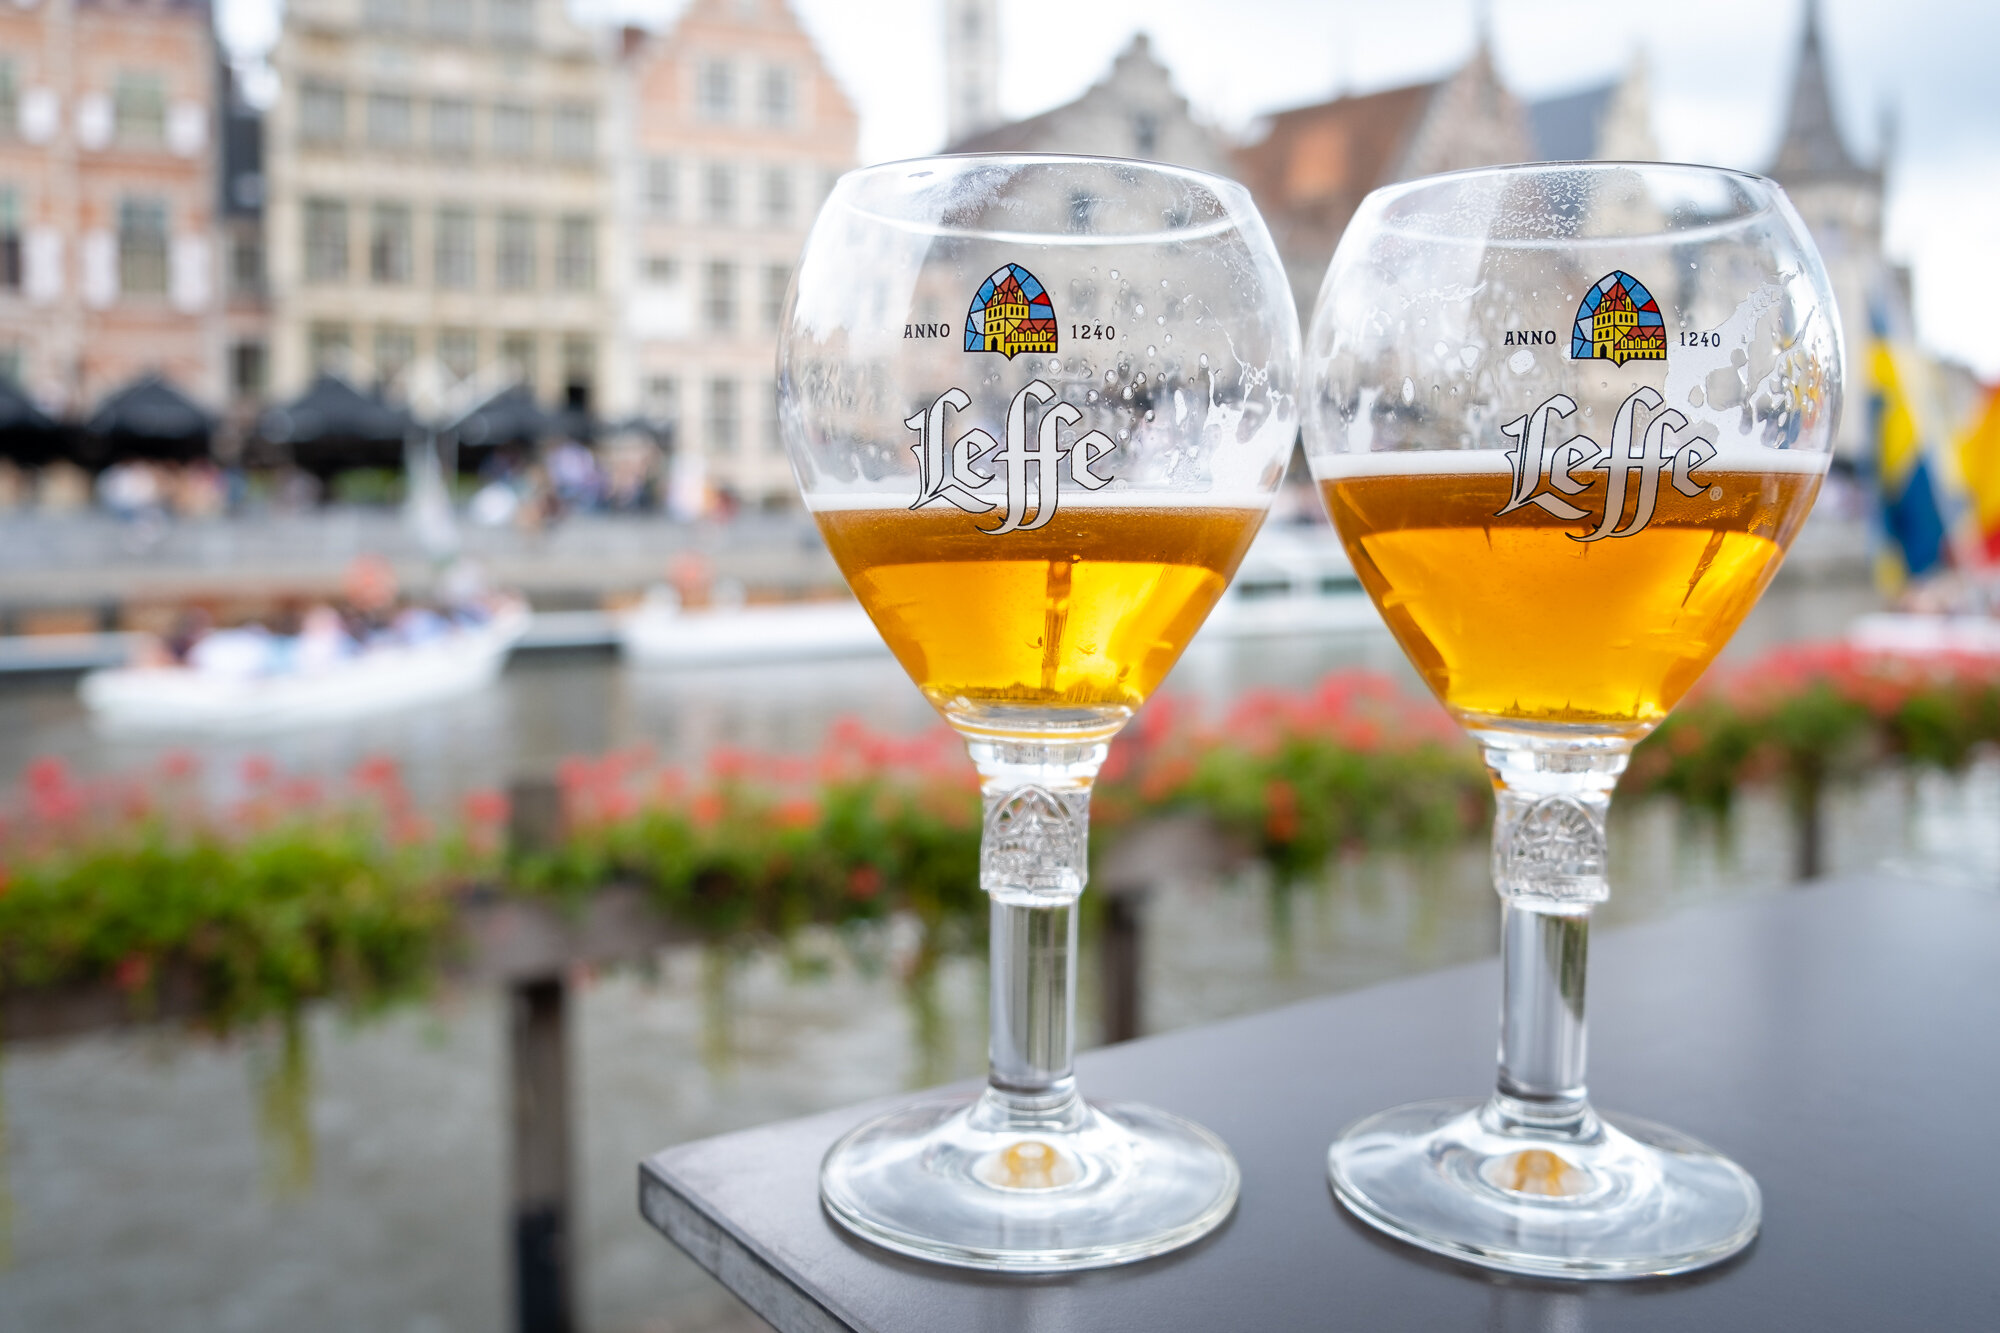 Enjoying some of the tasty beers Ghent has to offer